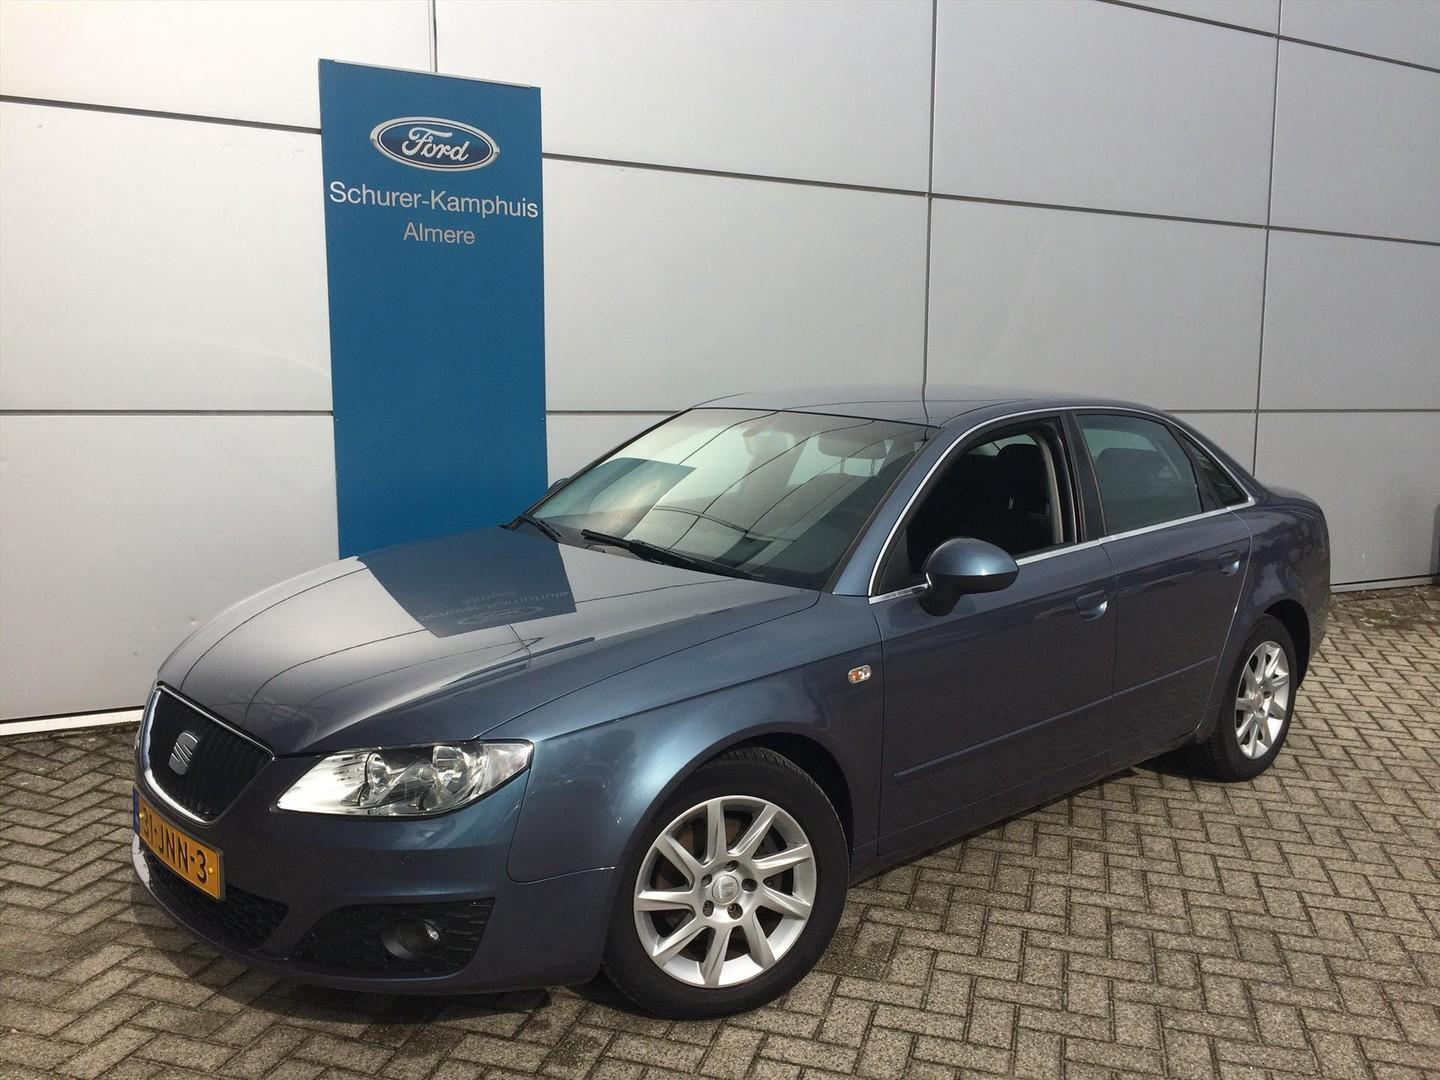 Seat Exeo 1.6 16v style navigatie / climate / cruise / lichtmetaal